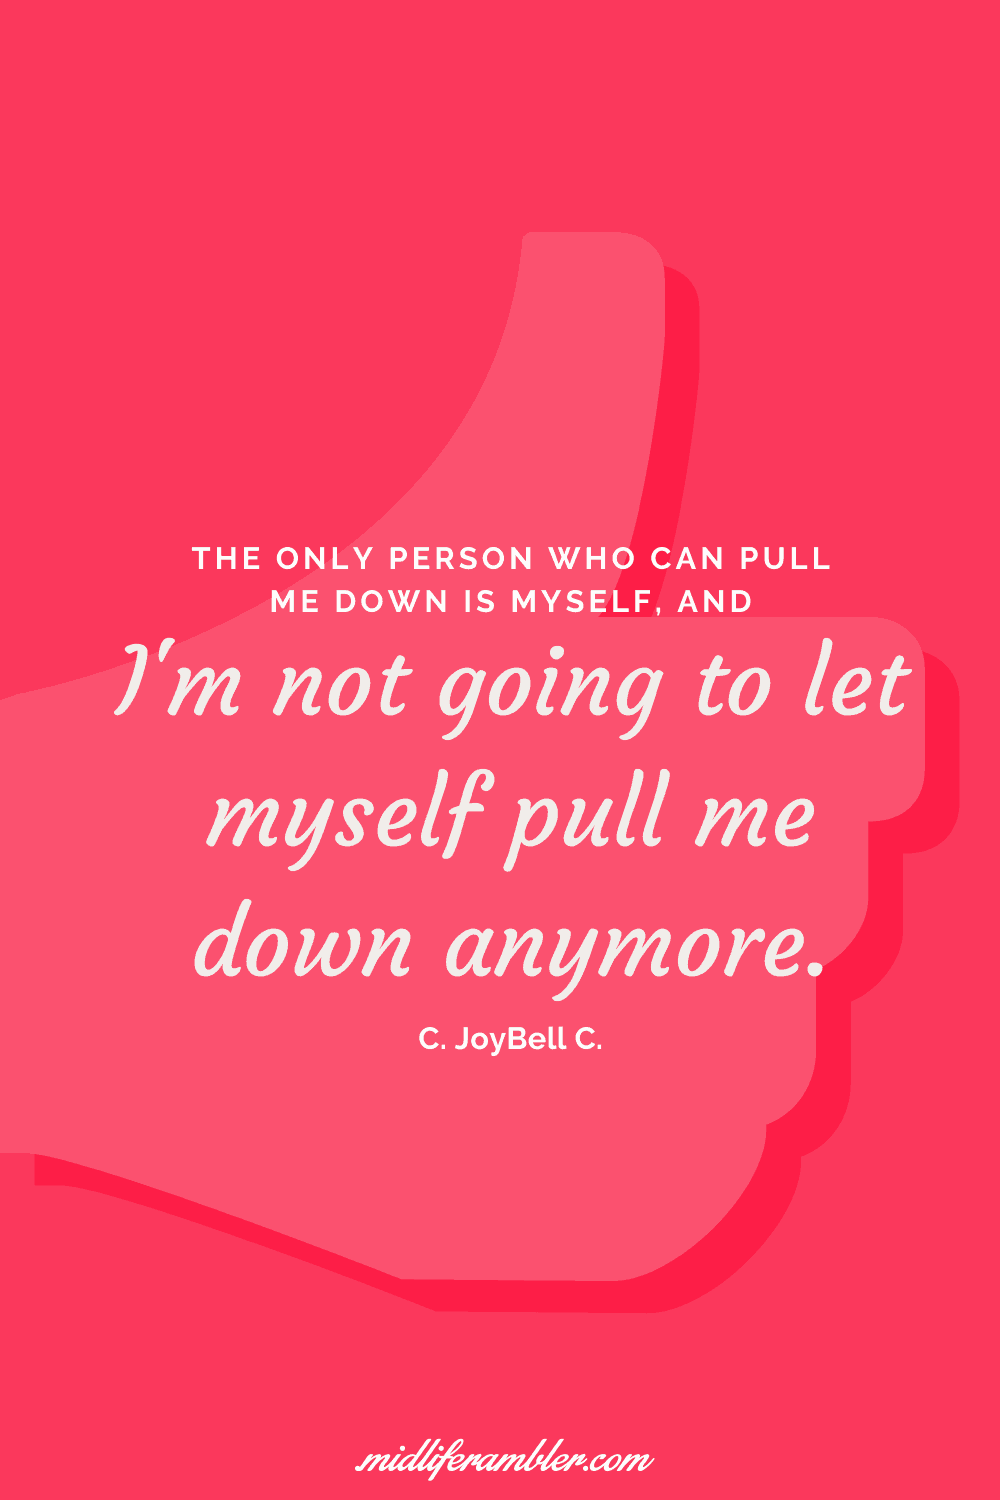 50 Self-Compassion Quotes and Affirmations to Help You Learn to Love and Accept Yourself - The only person who can pull me down is myself and I'm not going to let myself pull me down anymore.  - C. joybell C.